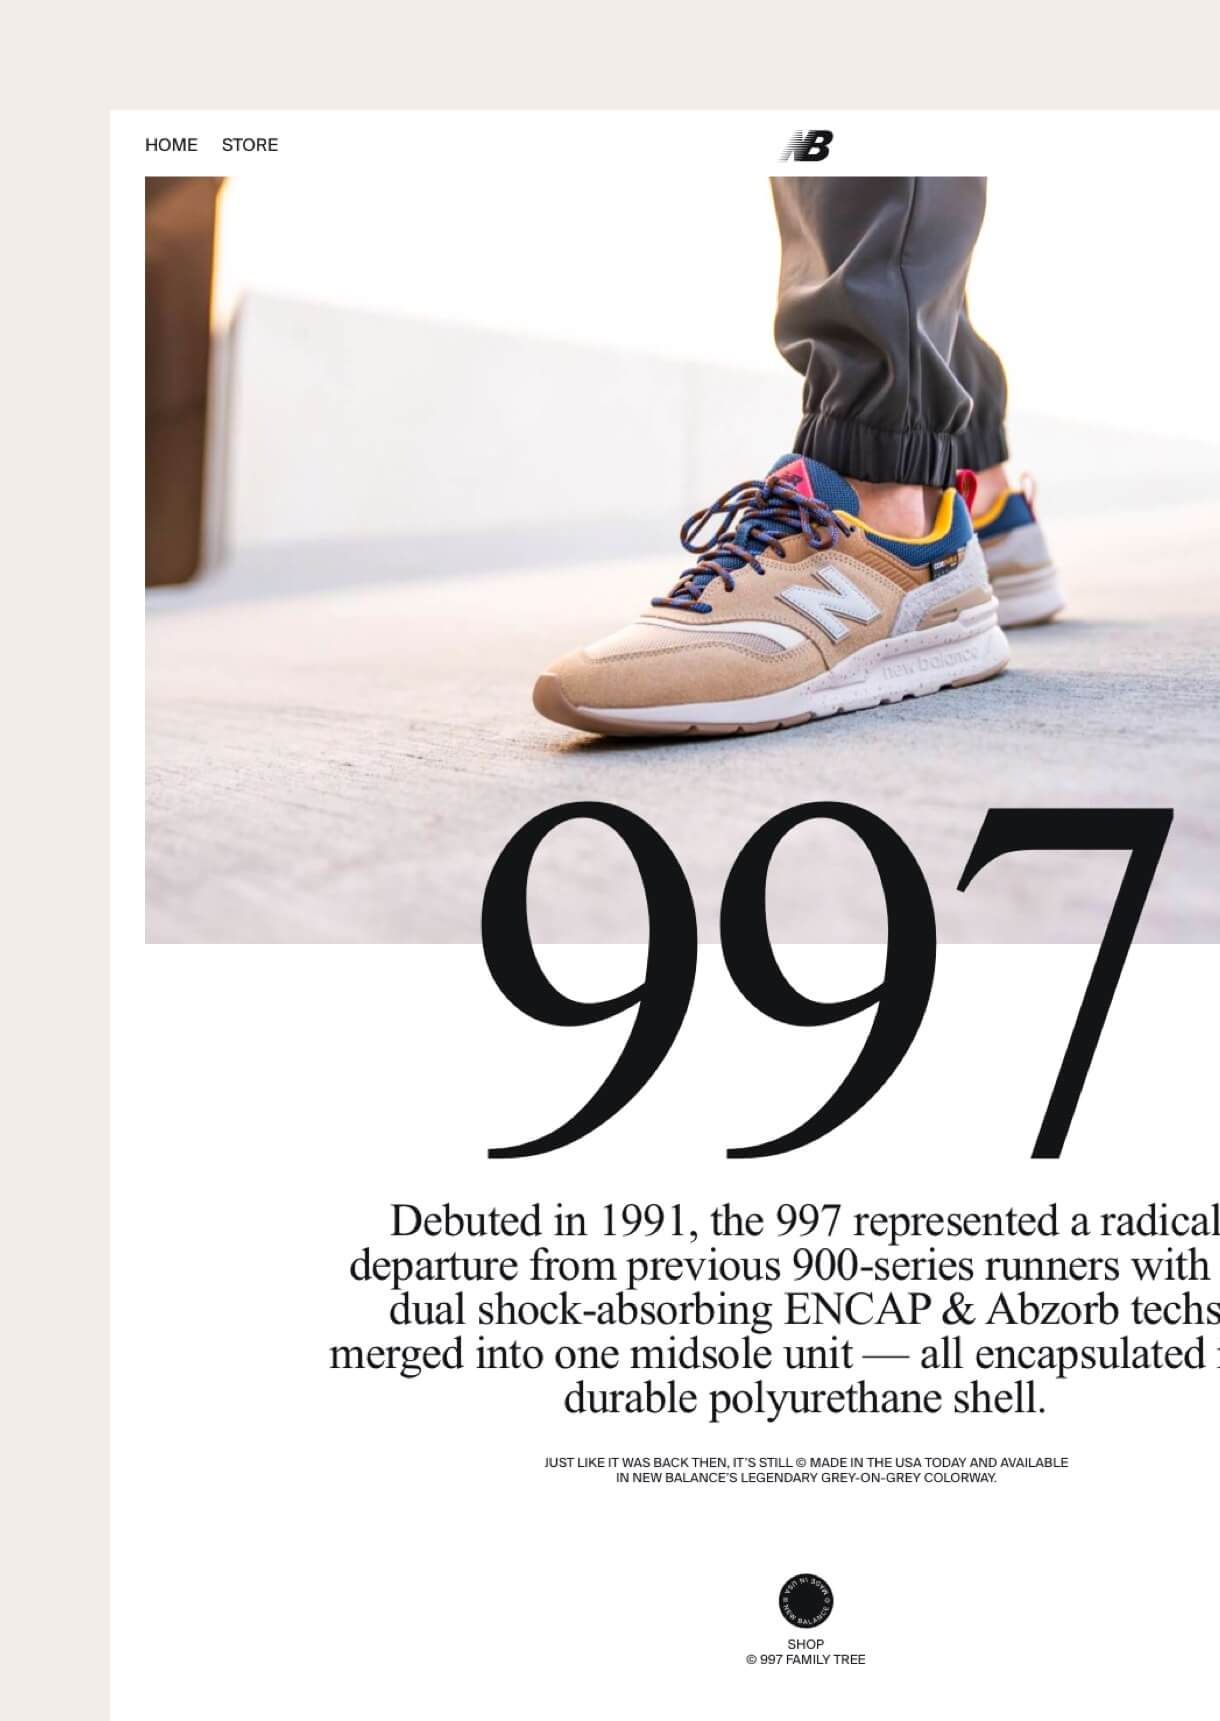 New Balance 997 design project image